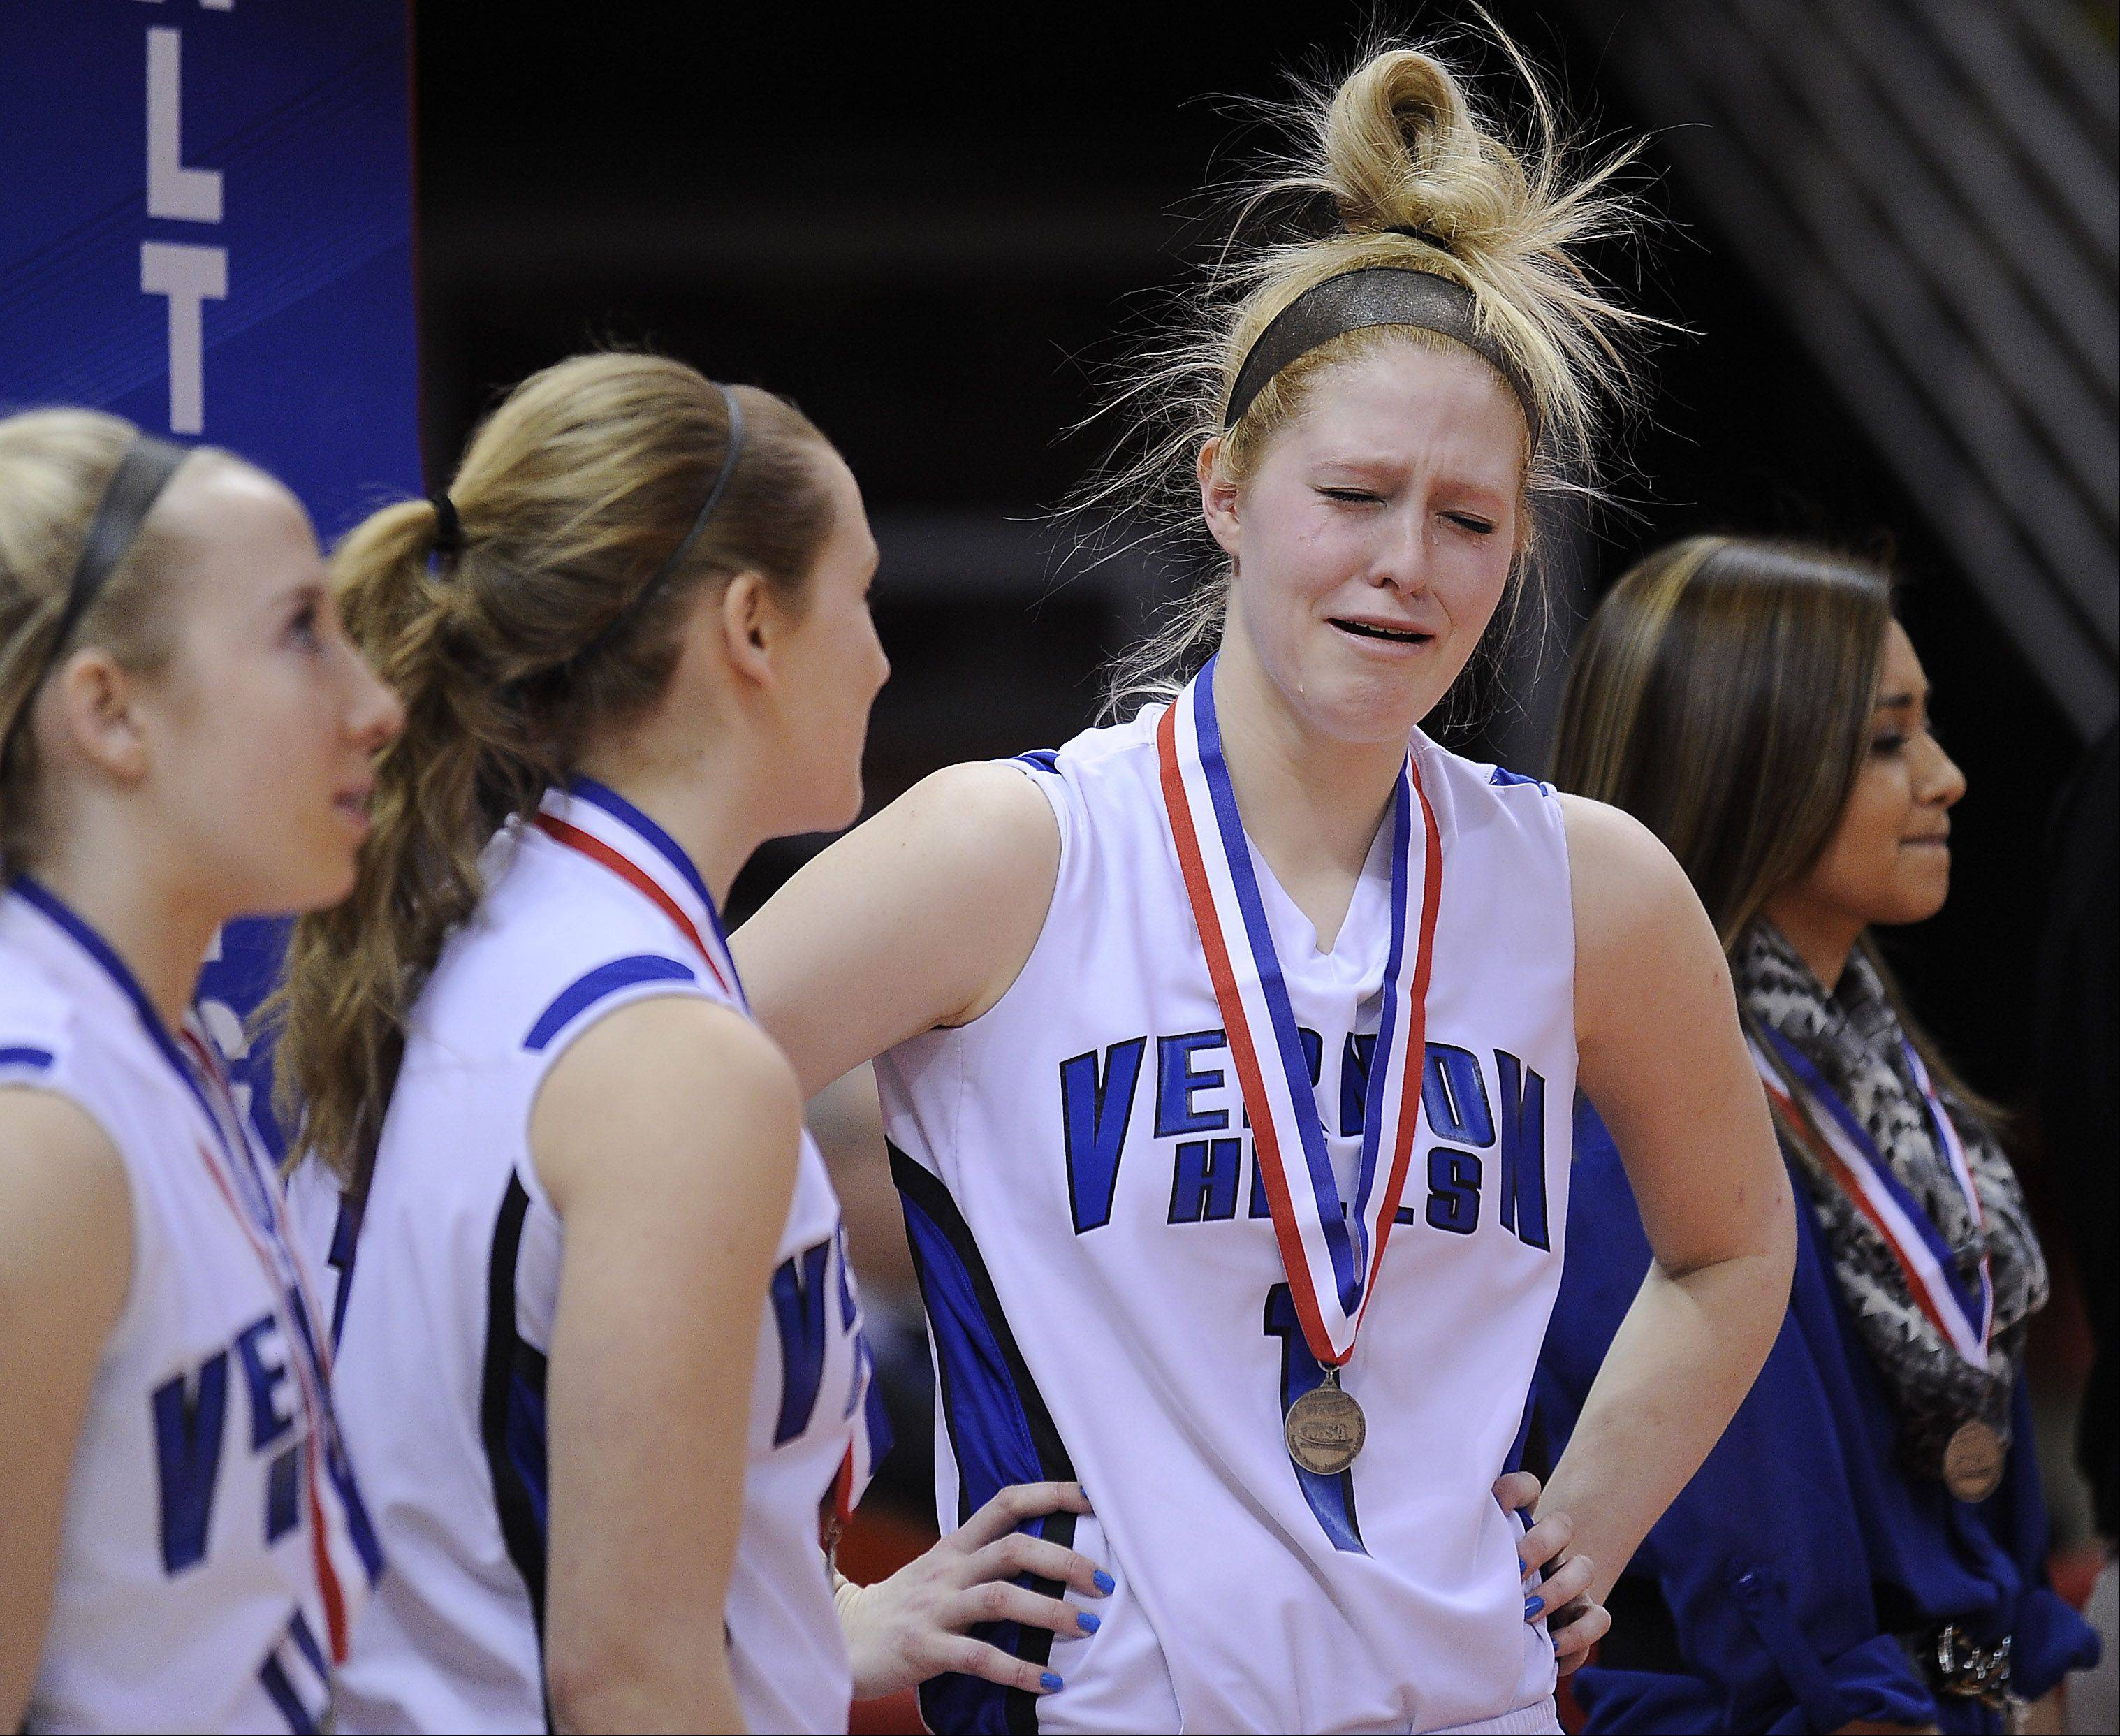 Vernon Hills' Sydney Smith becomes emotional after they lost to Quincy Notre Dame Notre Dame in the Class 3A state girls basketball championship game in Normal on Saturday.